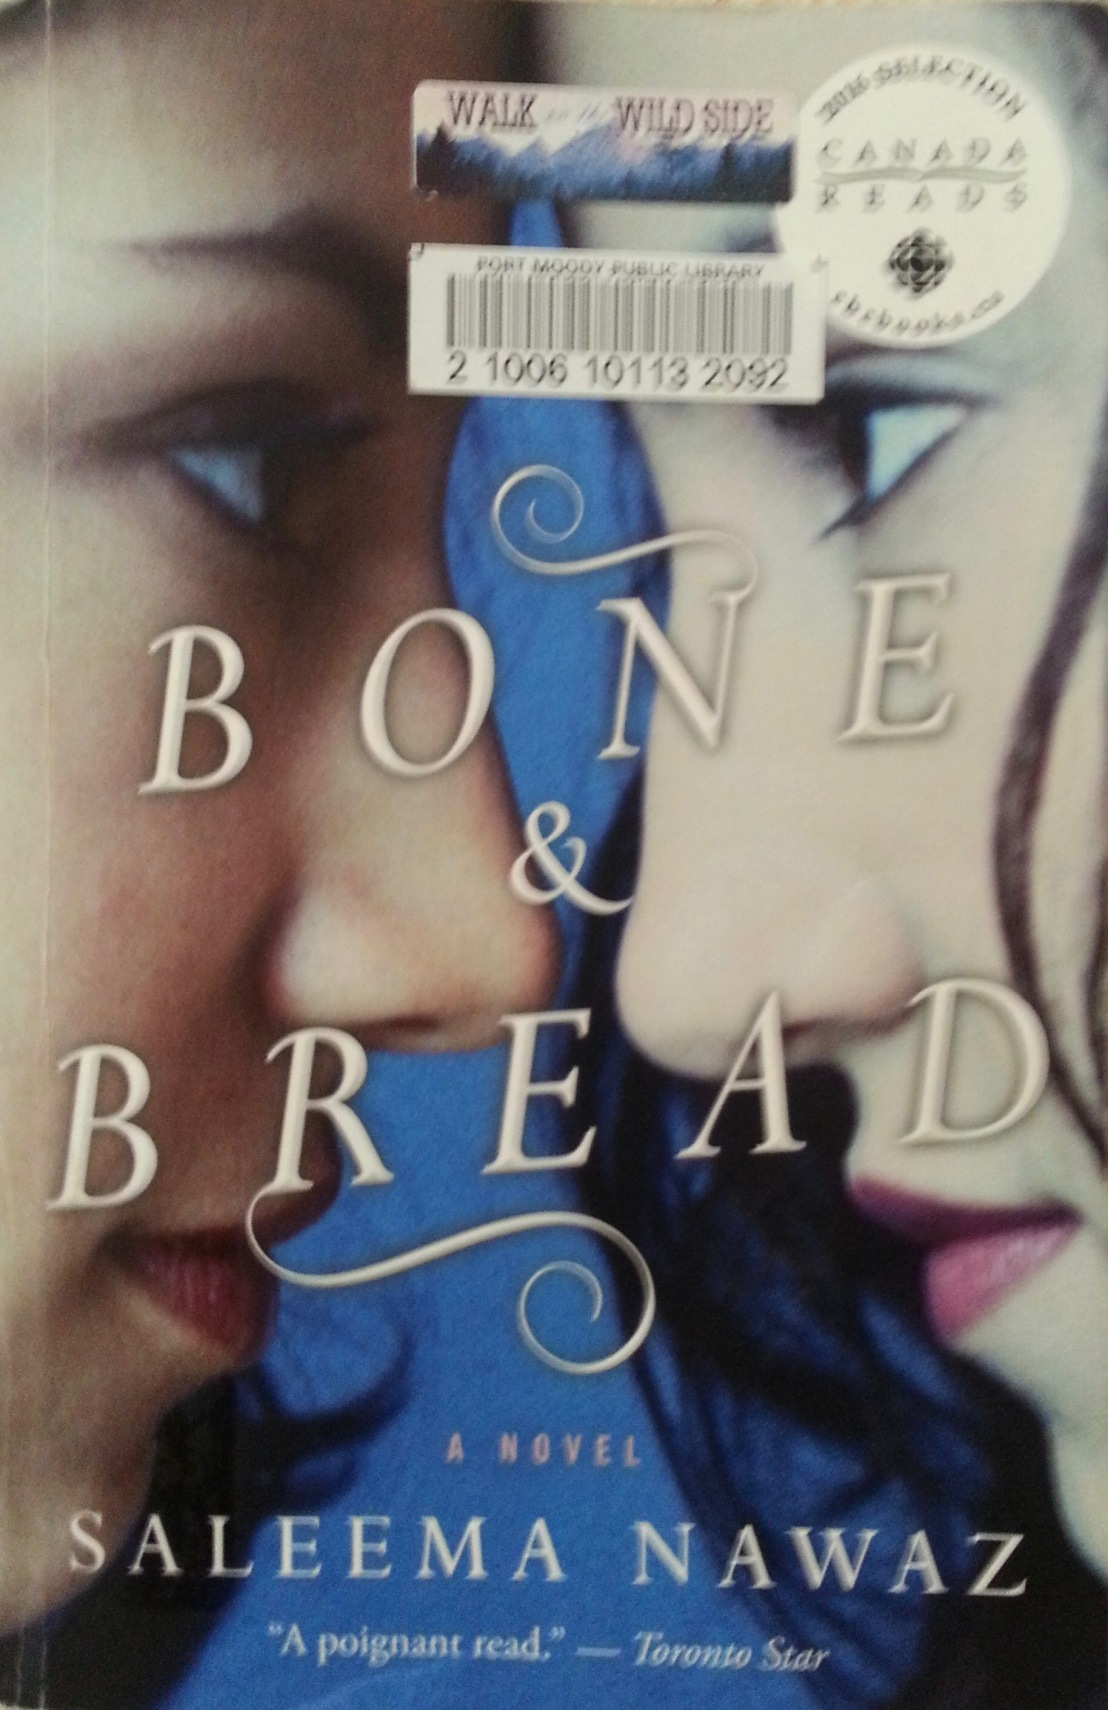 Saleema Nawzaz's — Bone and Bread *****